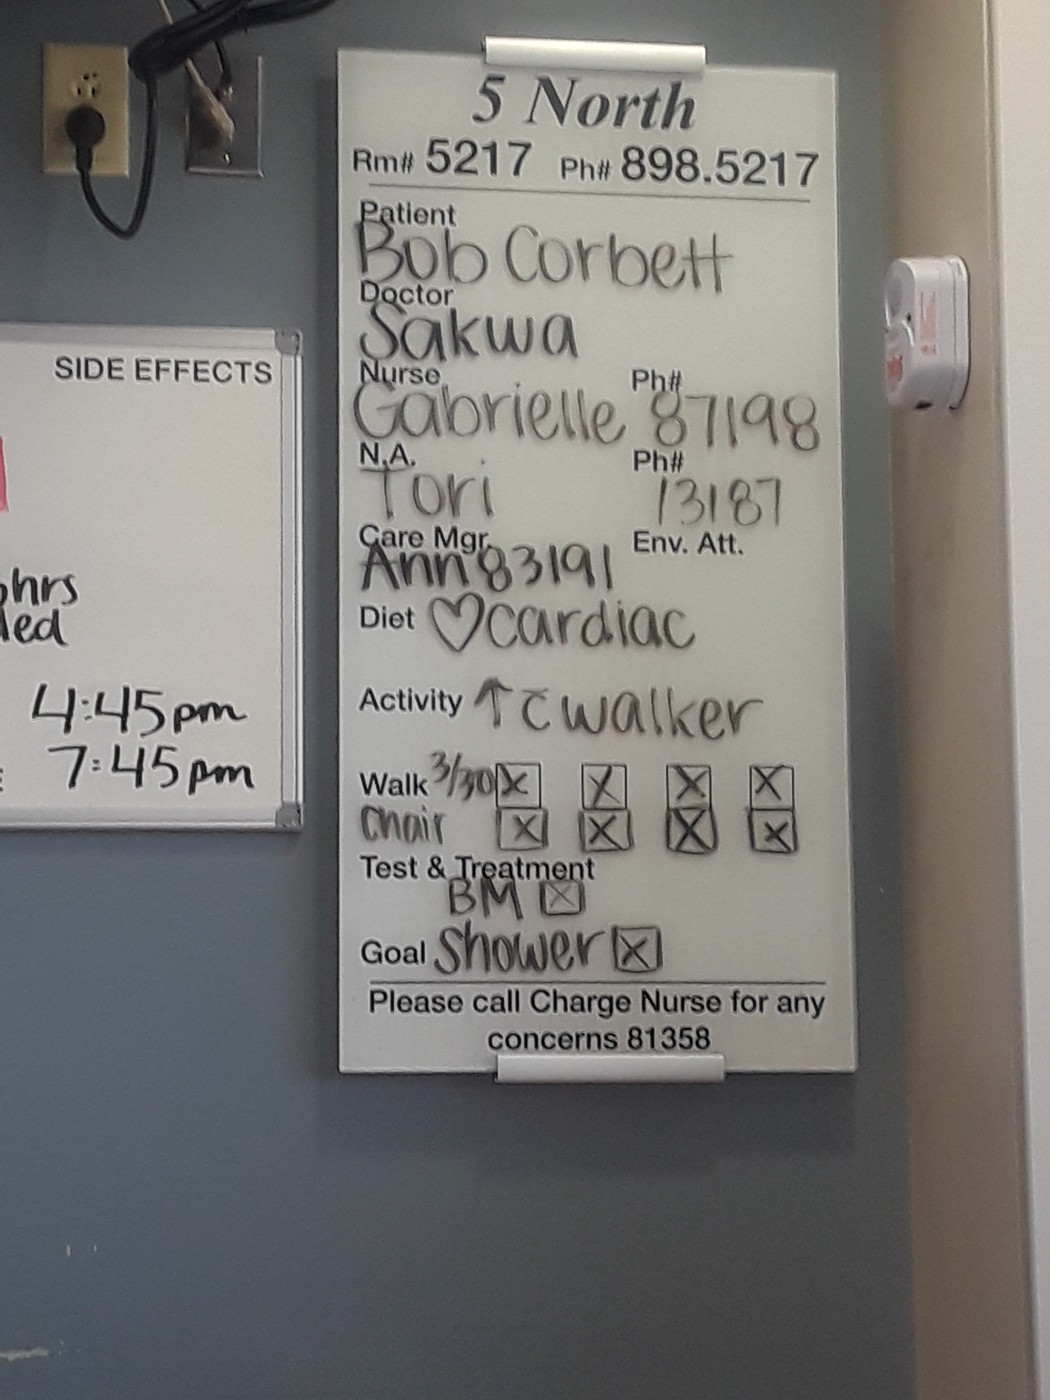 Instruction Board from late Friday, March 30, 2018.